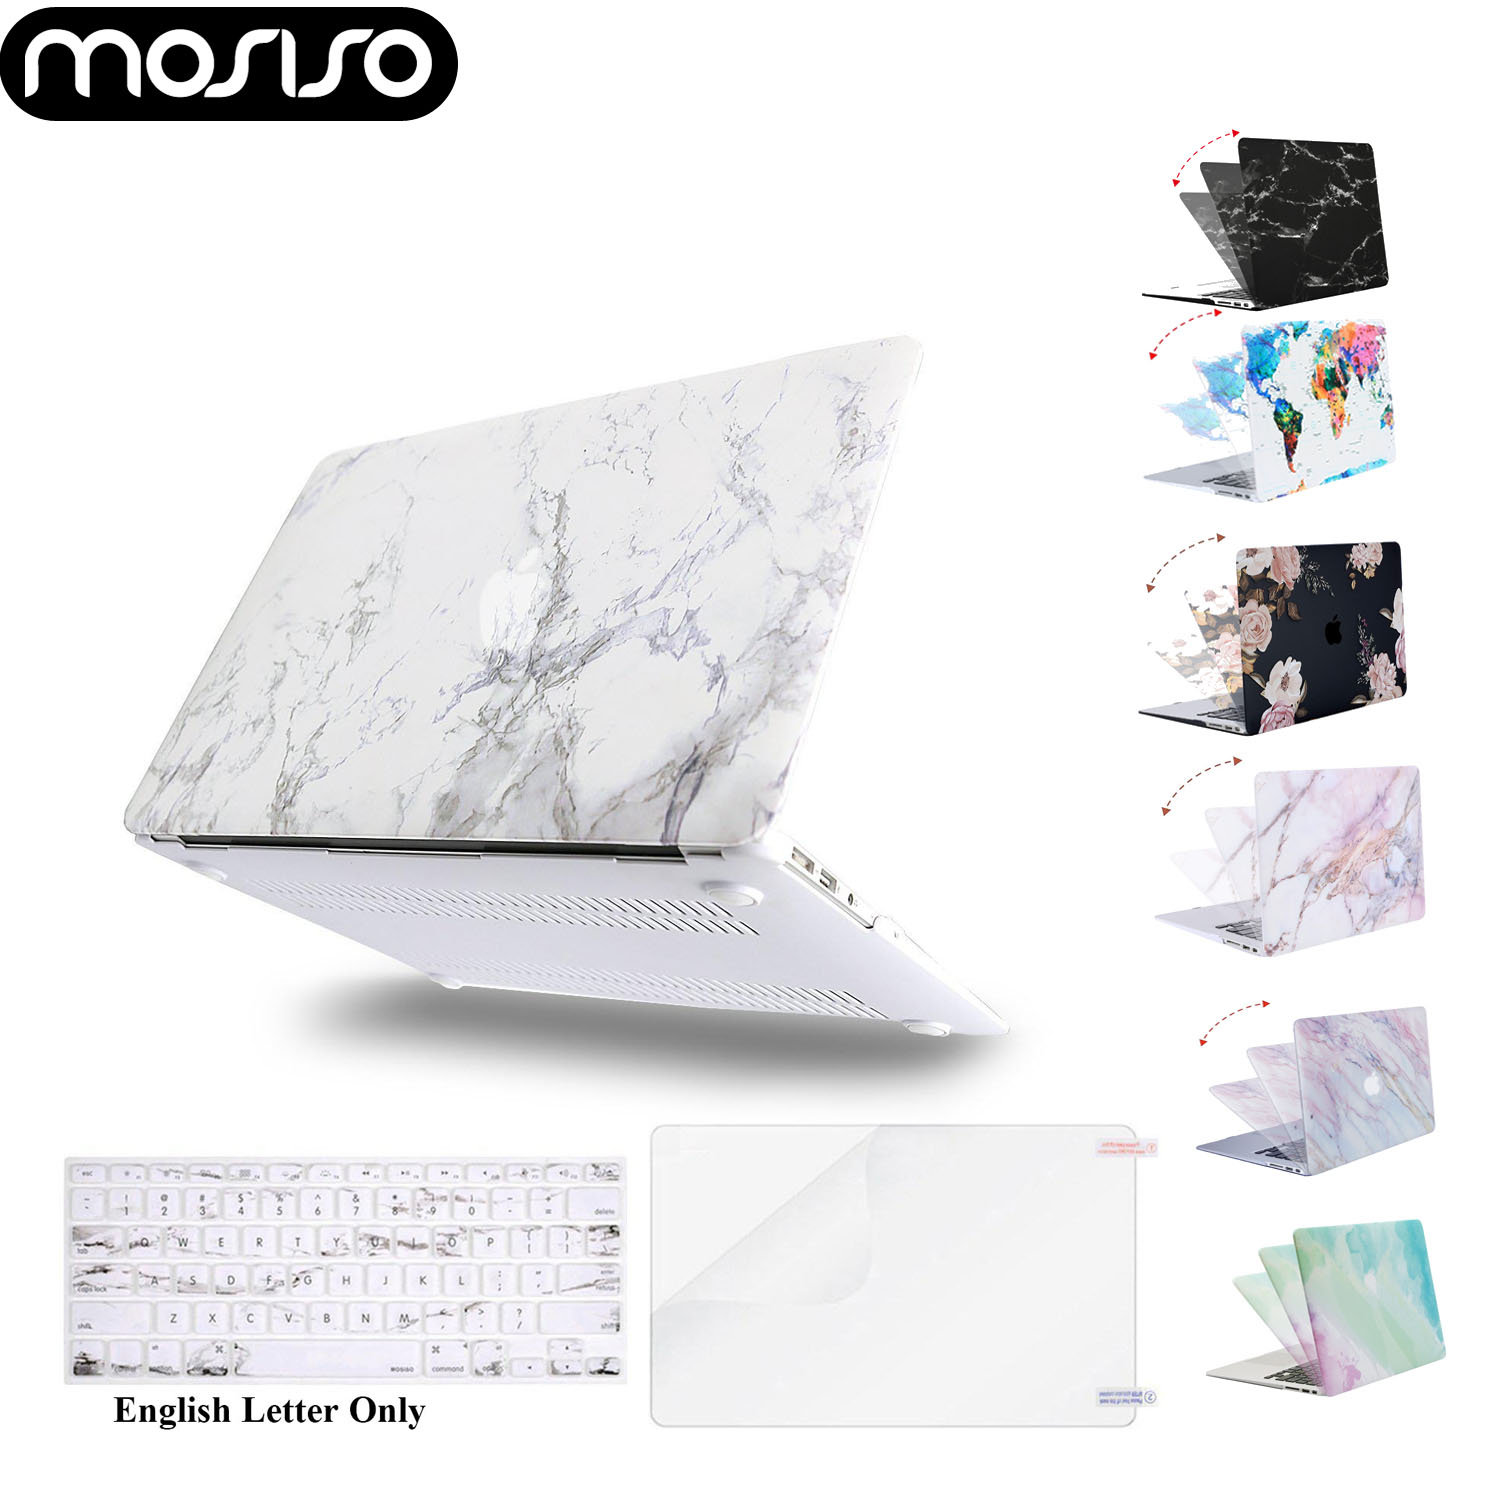 MOSISO Hard <font><b>Cover</b></font> Case for Laptop Macbook Pro 13 Touch Bar A1706 <font><b>A1708</b></font> A1989 <font><b>Mac</b></font> Air 13 inch 2017 2018 2019 Notebook Shell Case image